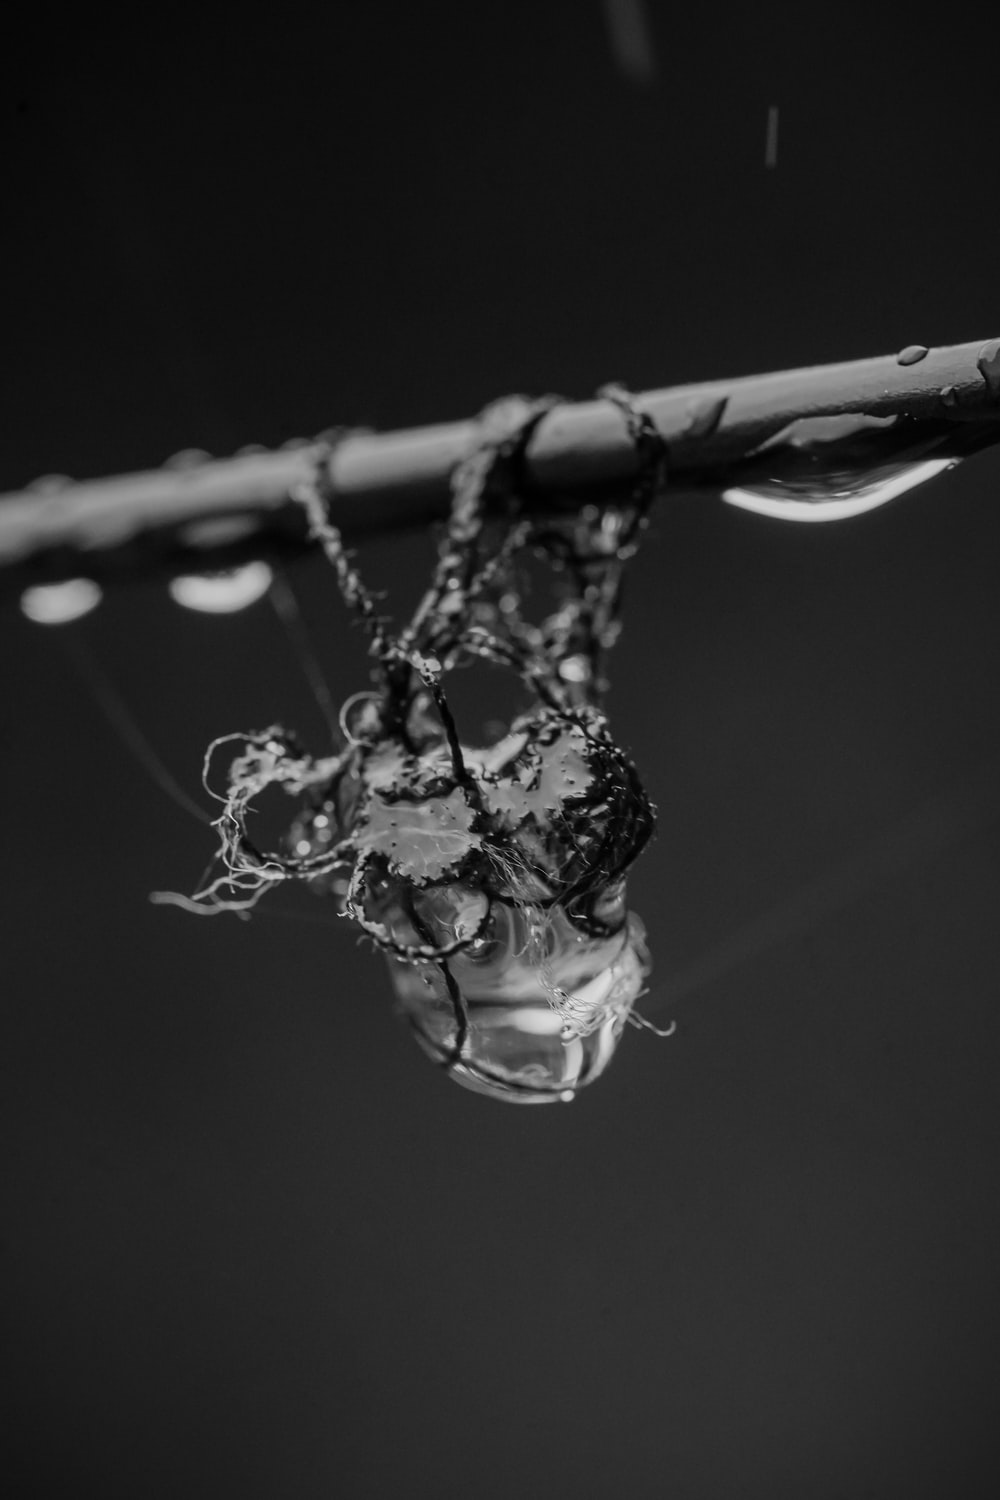 grayscale photo of water drop on tree branch